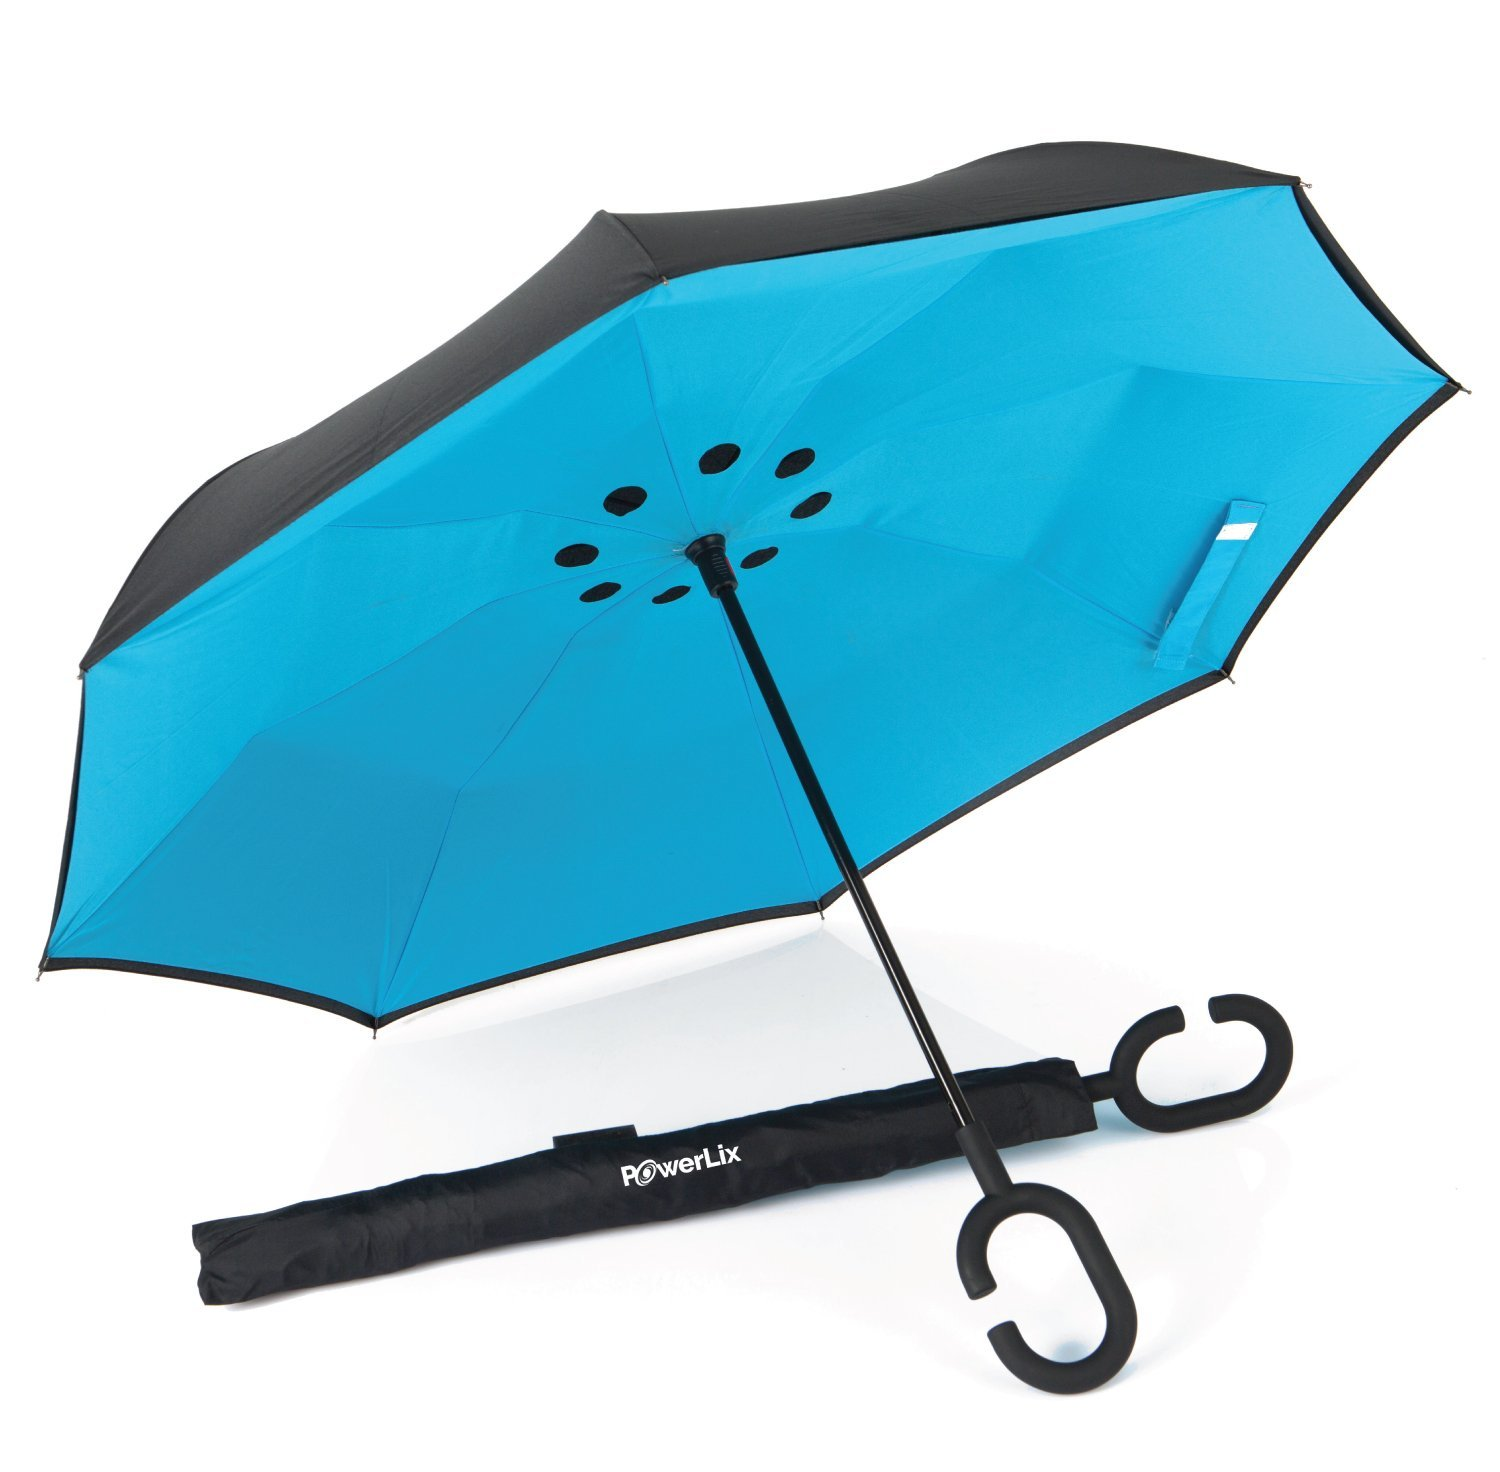 PowerLix Inverted Umbrella - Double Layer Large Reverse Folding Umbrella for Car Rain Outdoor, Windproof And Uv Proof - Hands Free C-Shaped Handle, Self-Standing Feature – For men's and women's